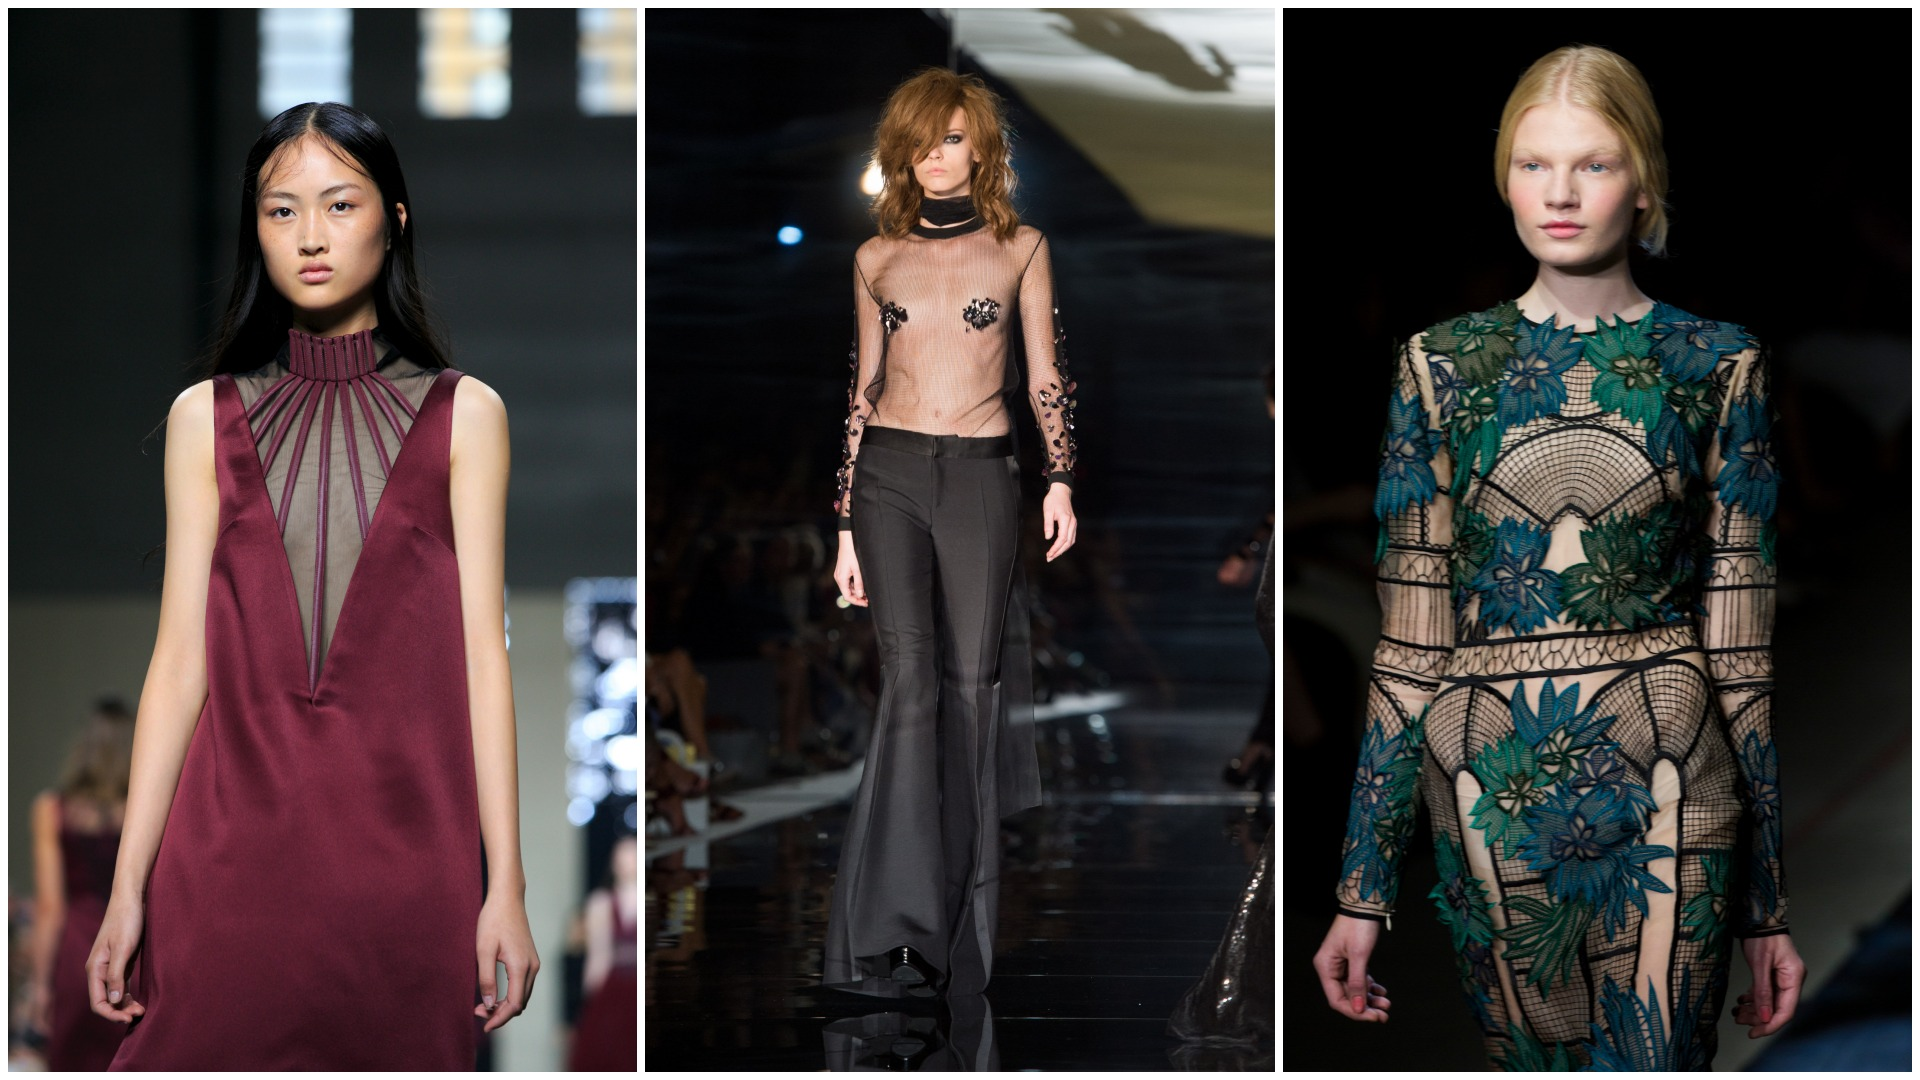 Sheer is a big trend for 2015 fashion